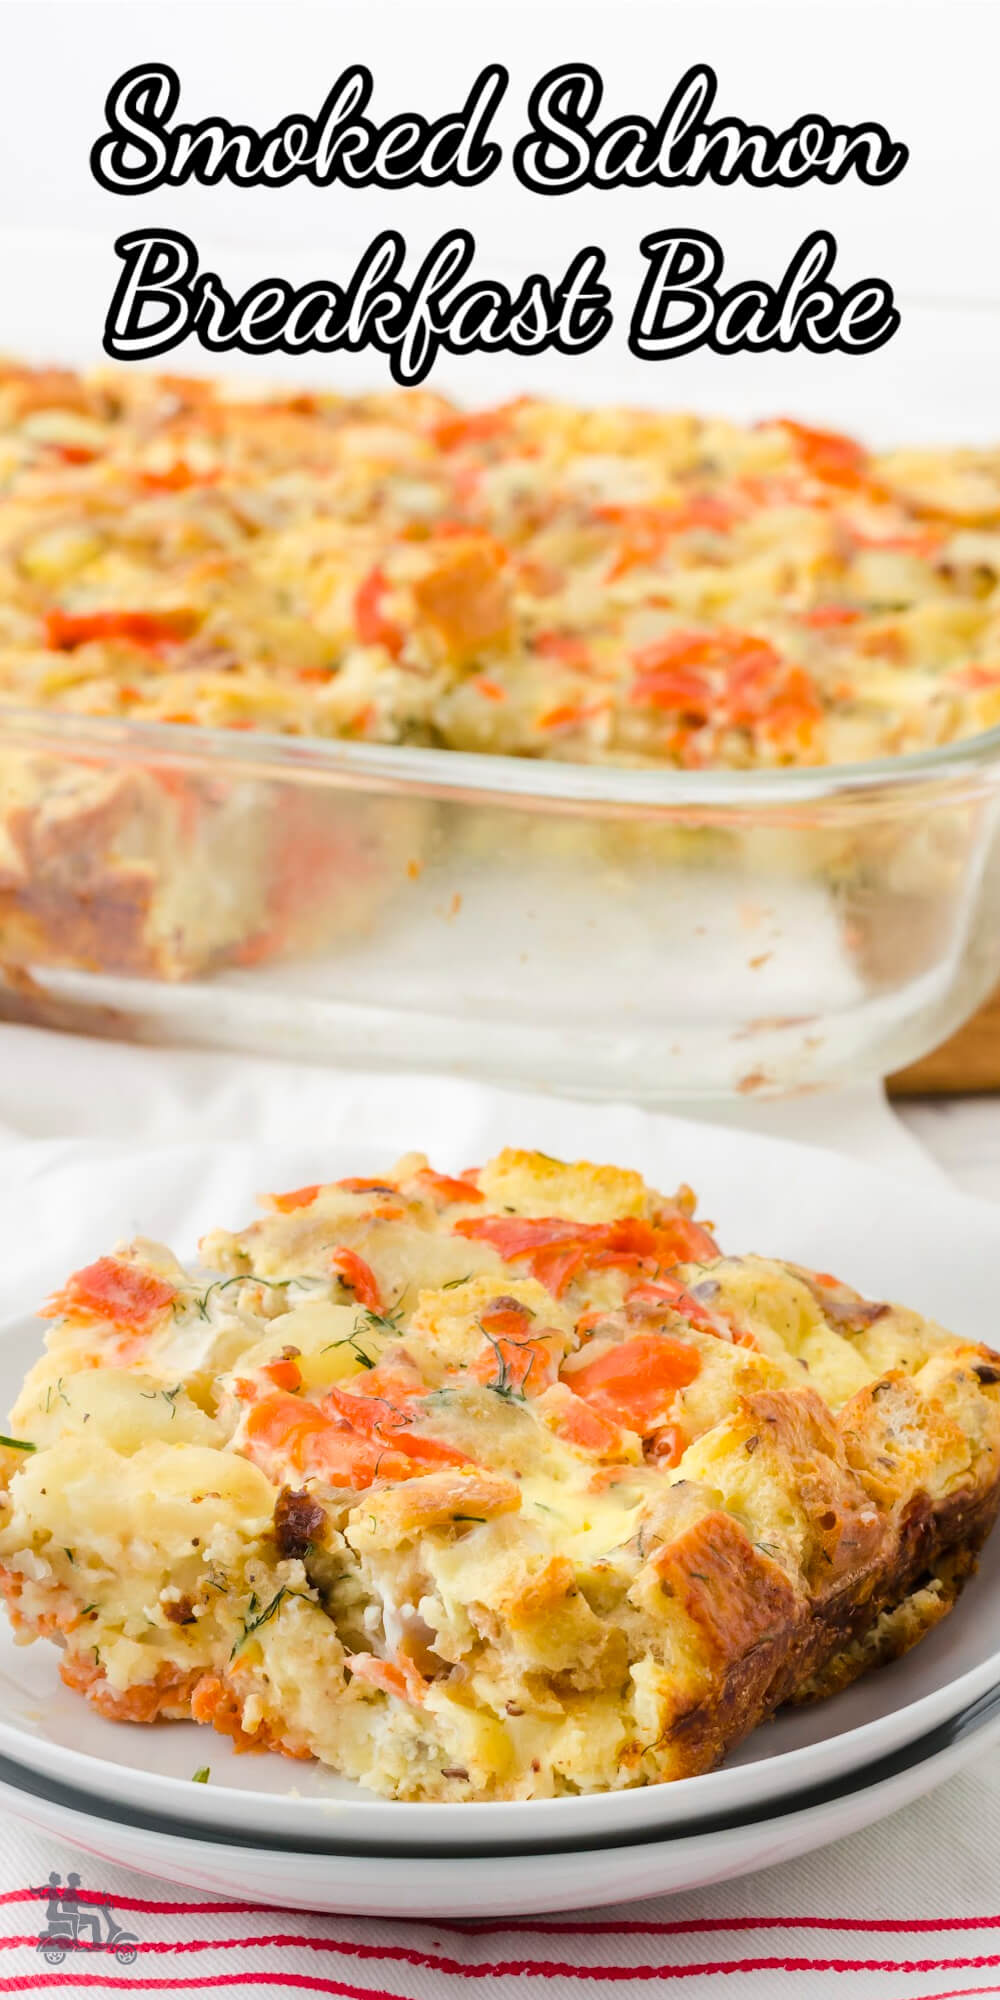 This breakfast egg casserole is a delicious mixture of smoke salmon, potatoes, eggs, cream and seasoned with fresh chives ,dill, shallots and a touch of Dijon mustard. It's easy to make the night before then just pop in the oven when you're ready. This makes an excellent brunch dish during the holidays or for a special occasion. It's also easy to halve for a smaller group. #eggcasserole #smokedsalmon #breakfastcasserole #smokedsalmonbreakfast.